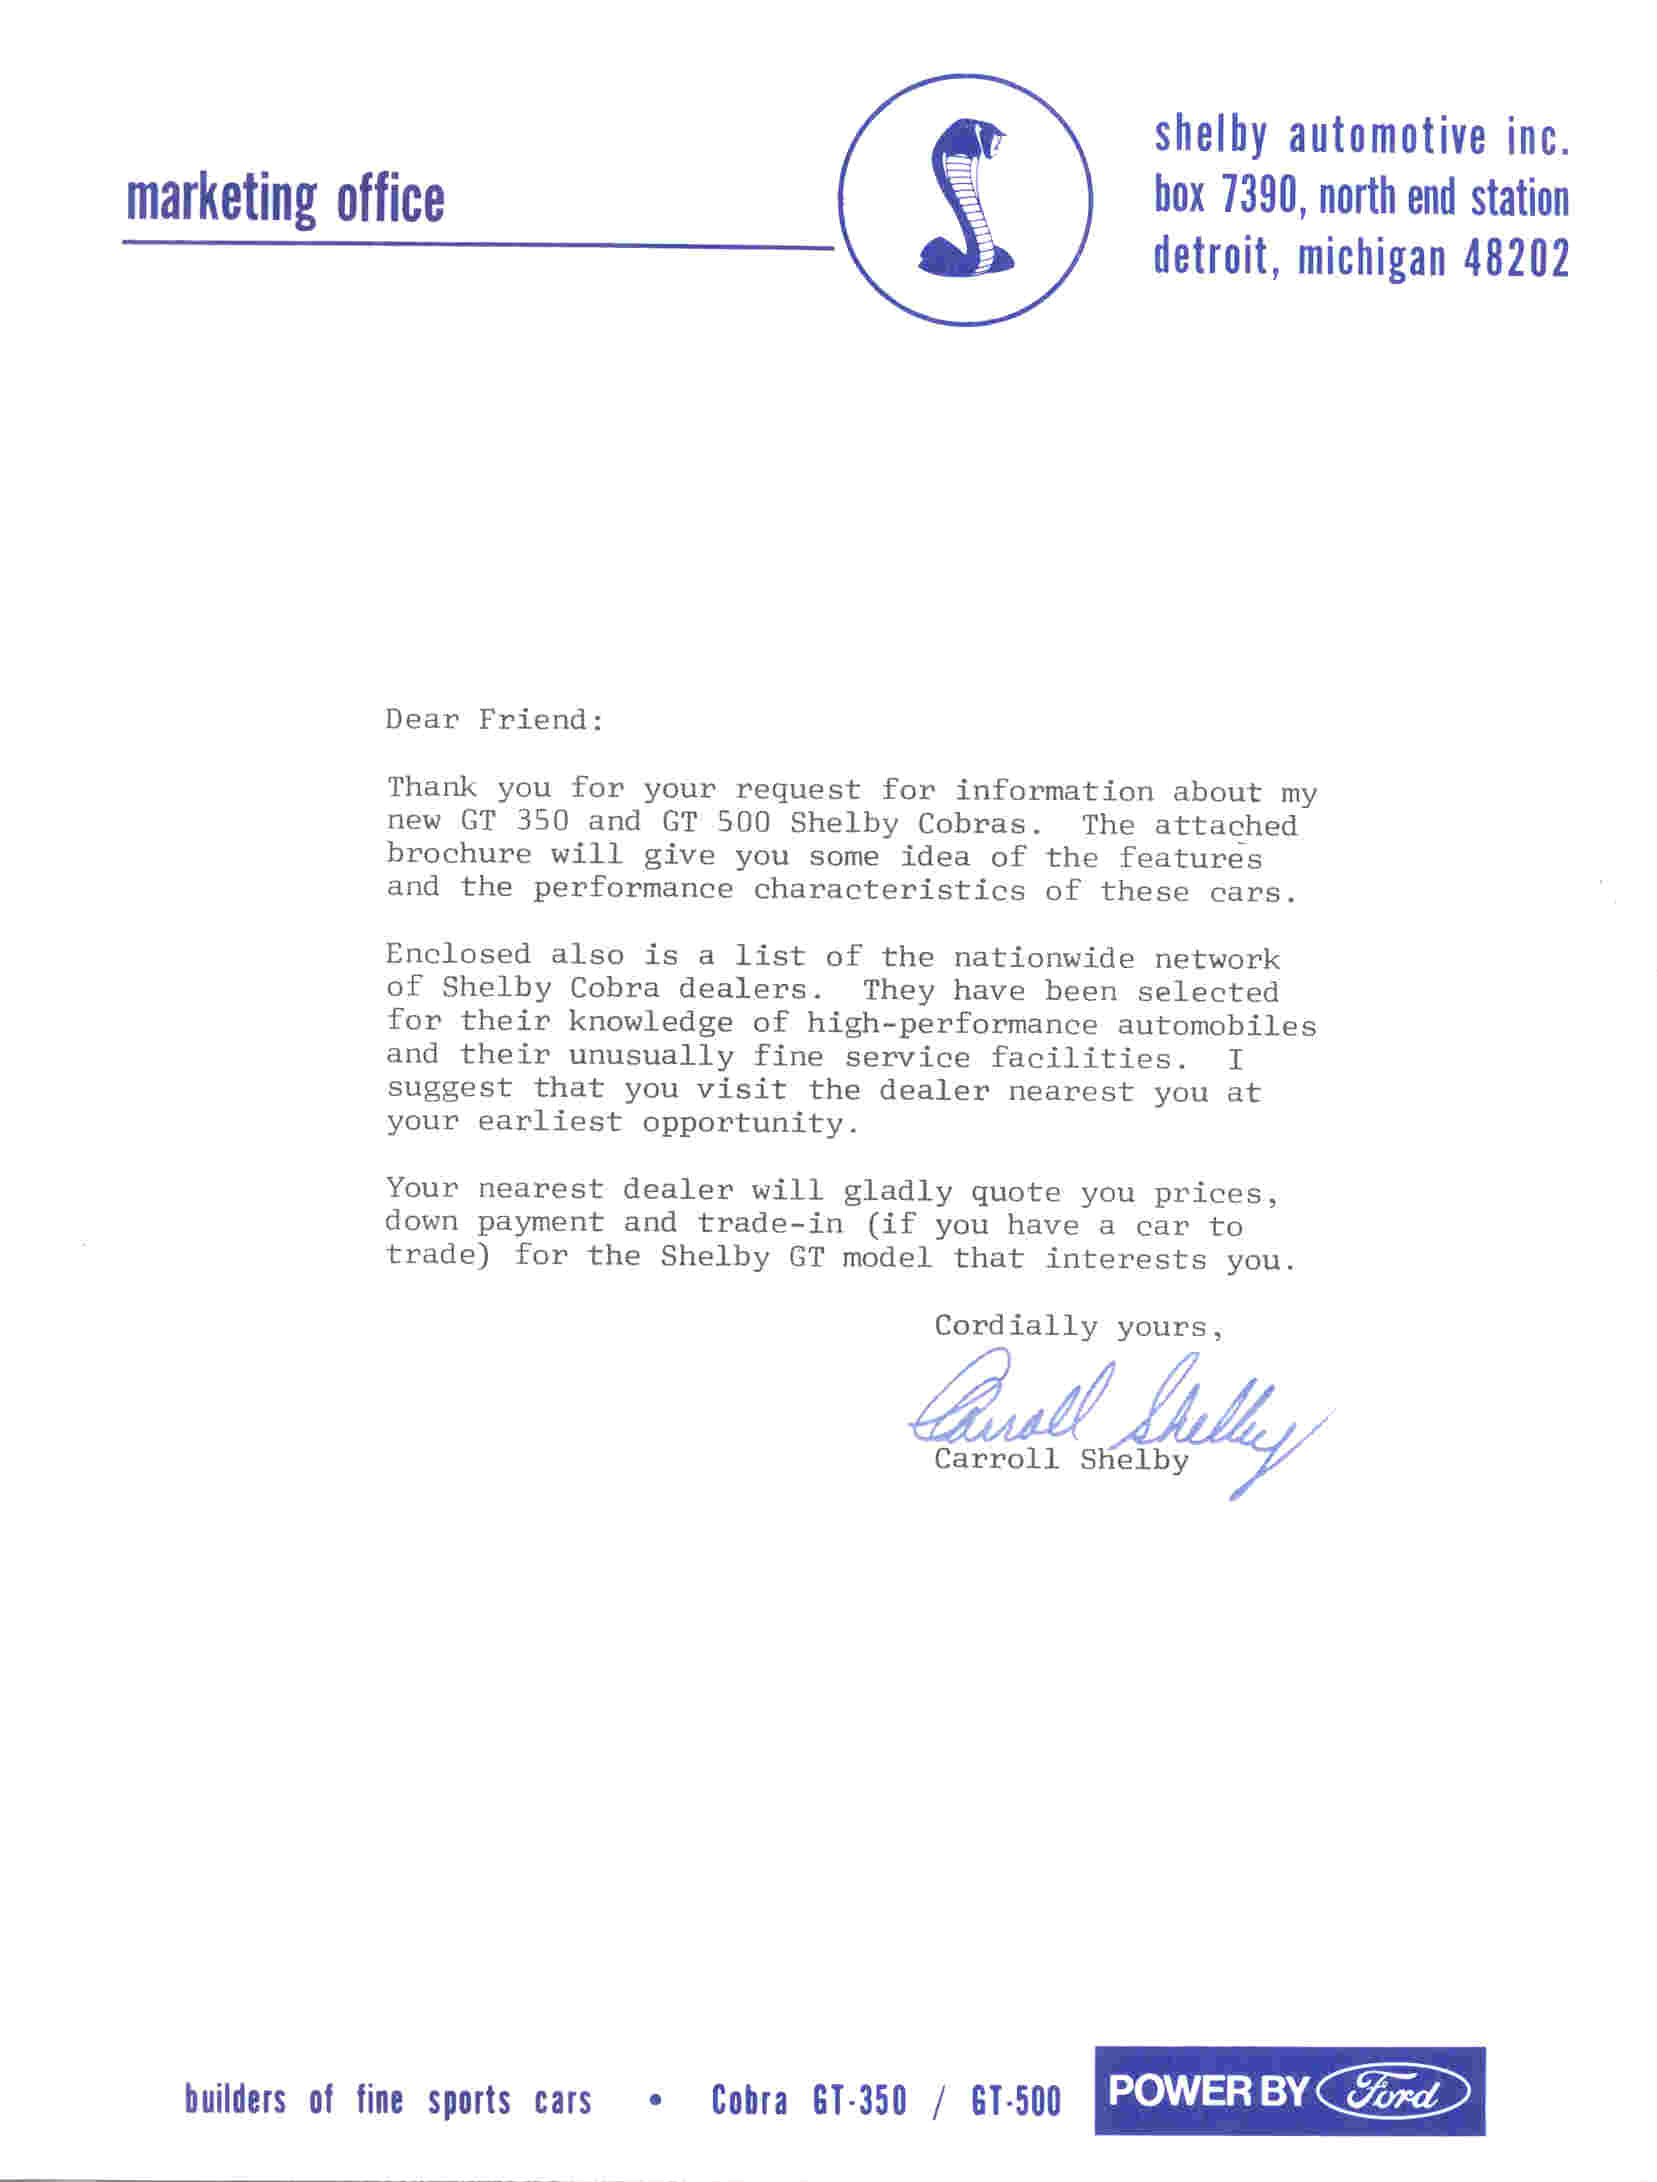 shelby marketing letter